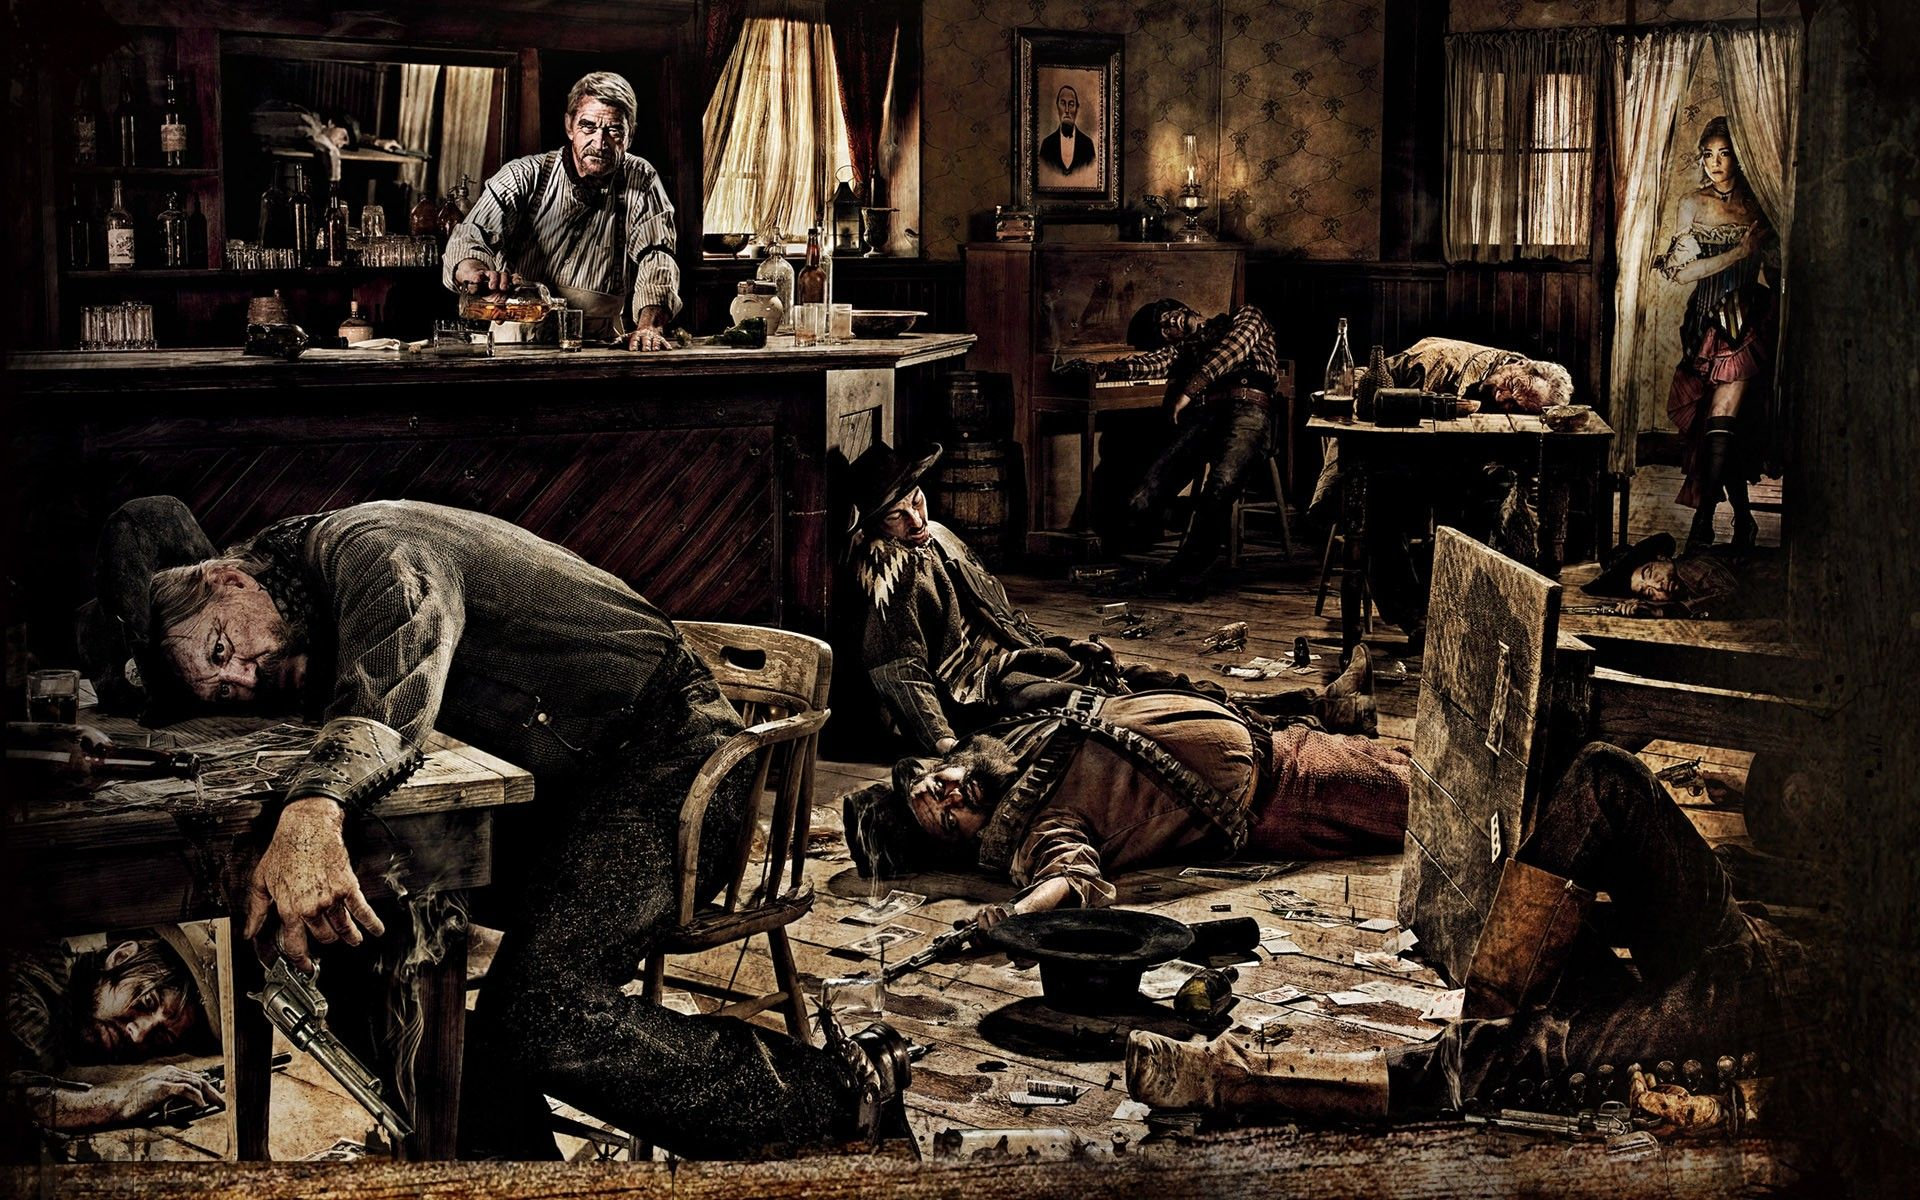 Wild west slaughterhouse saloon wallpaper forwallpaper for Lounge wallpaper